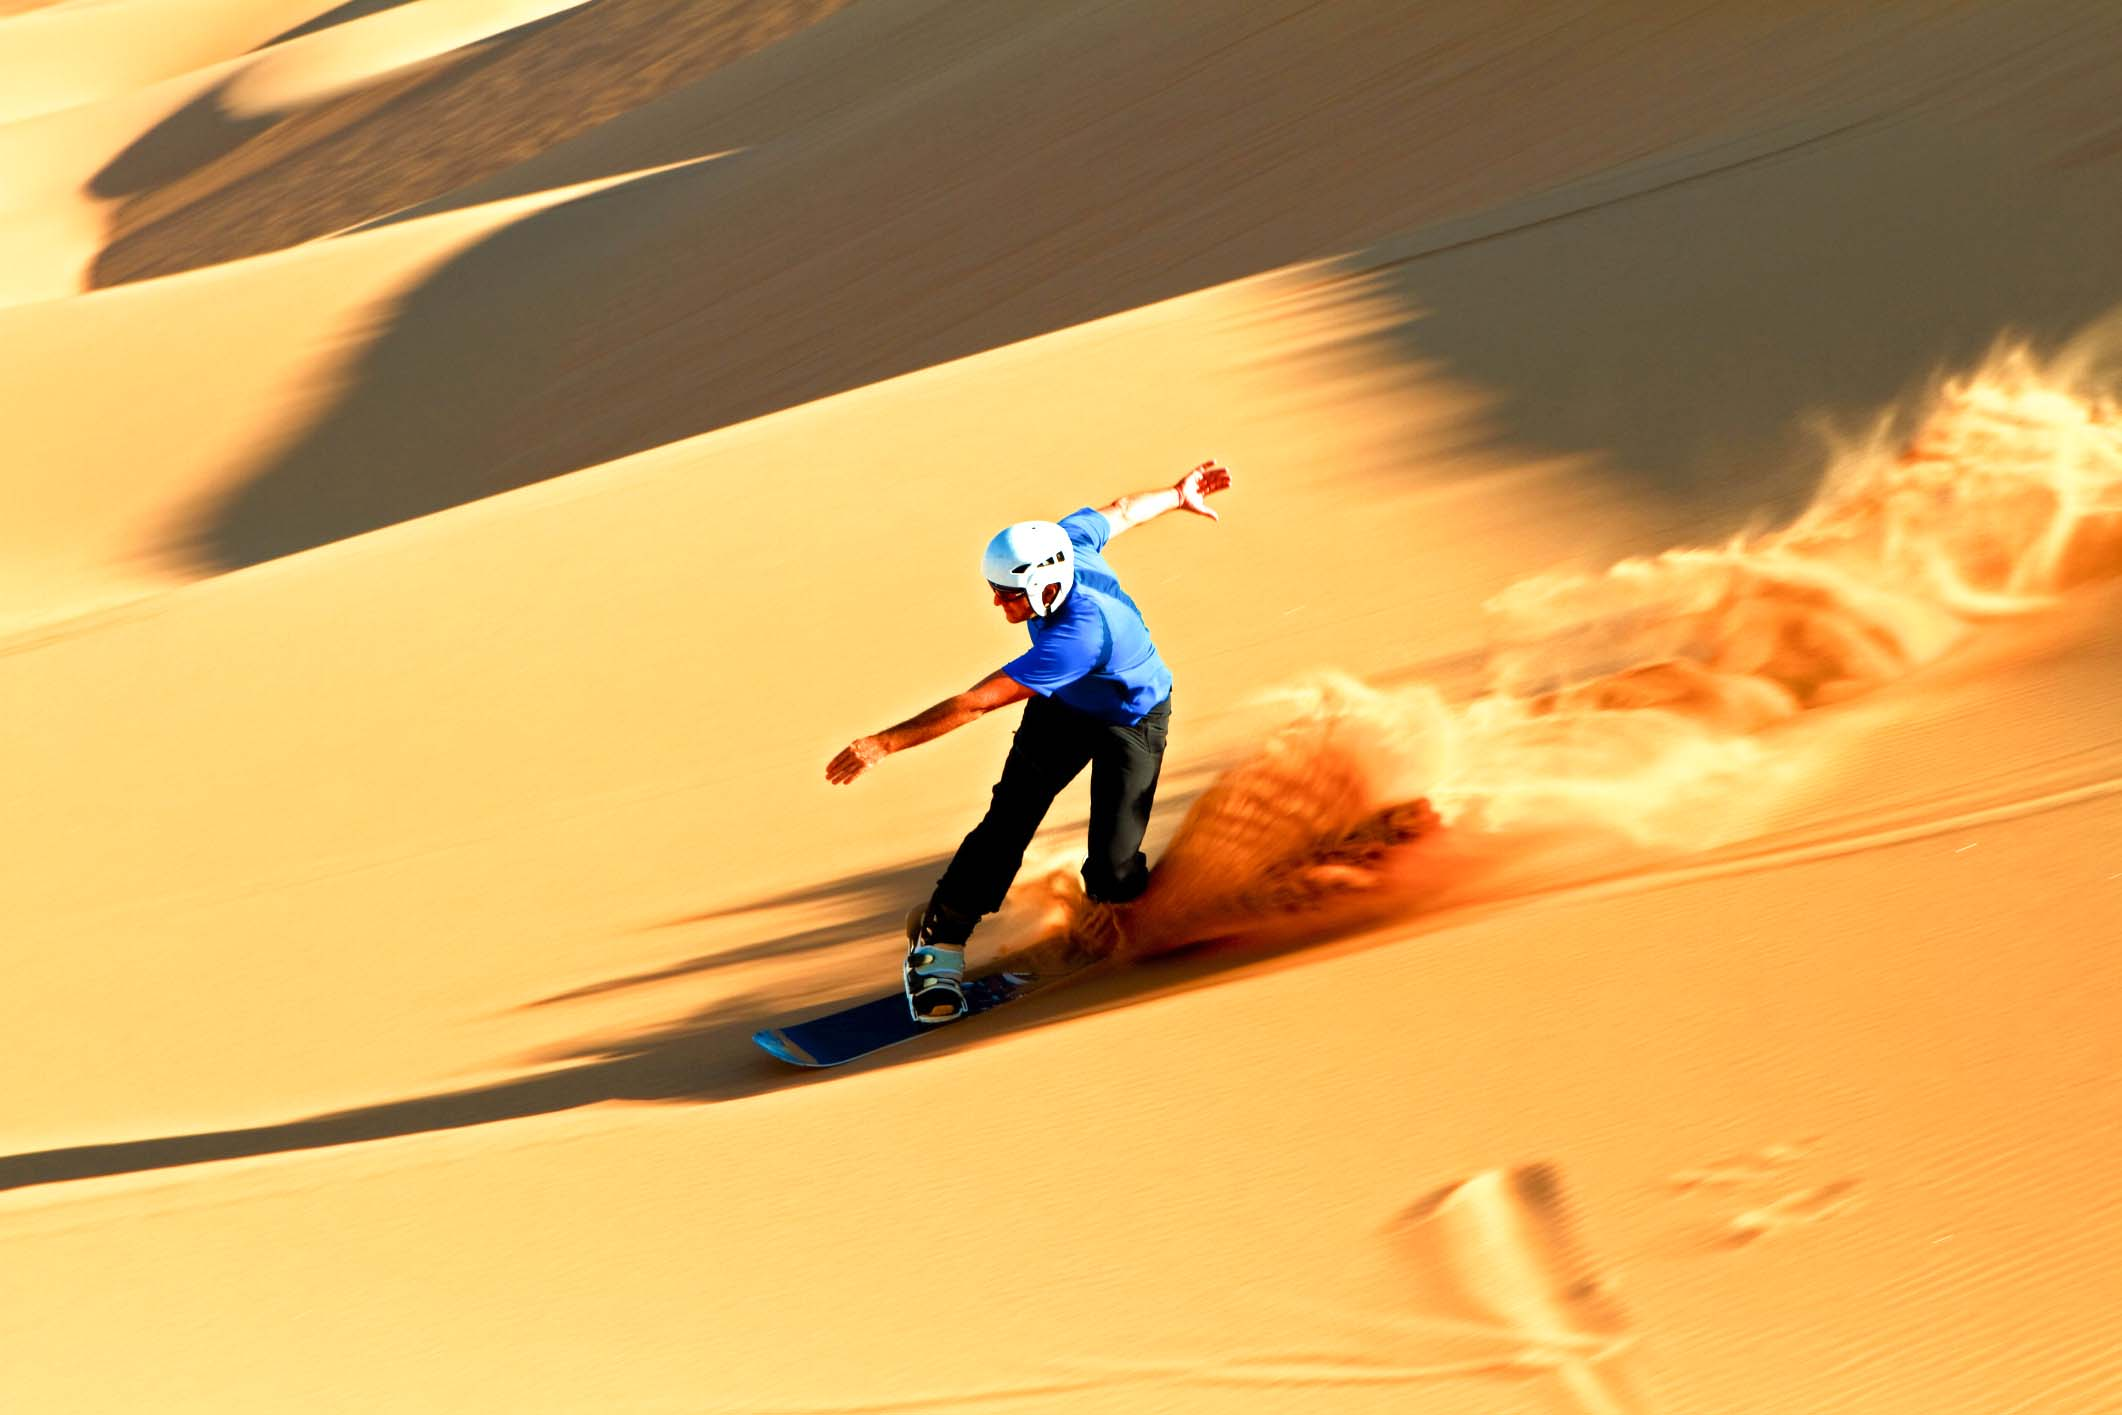 Surfing the Dubai sands